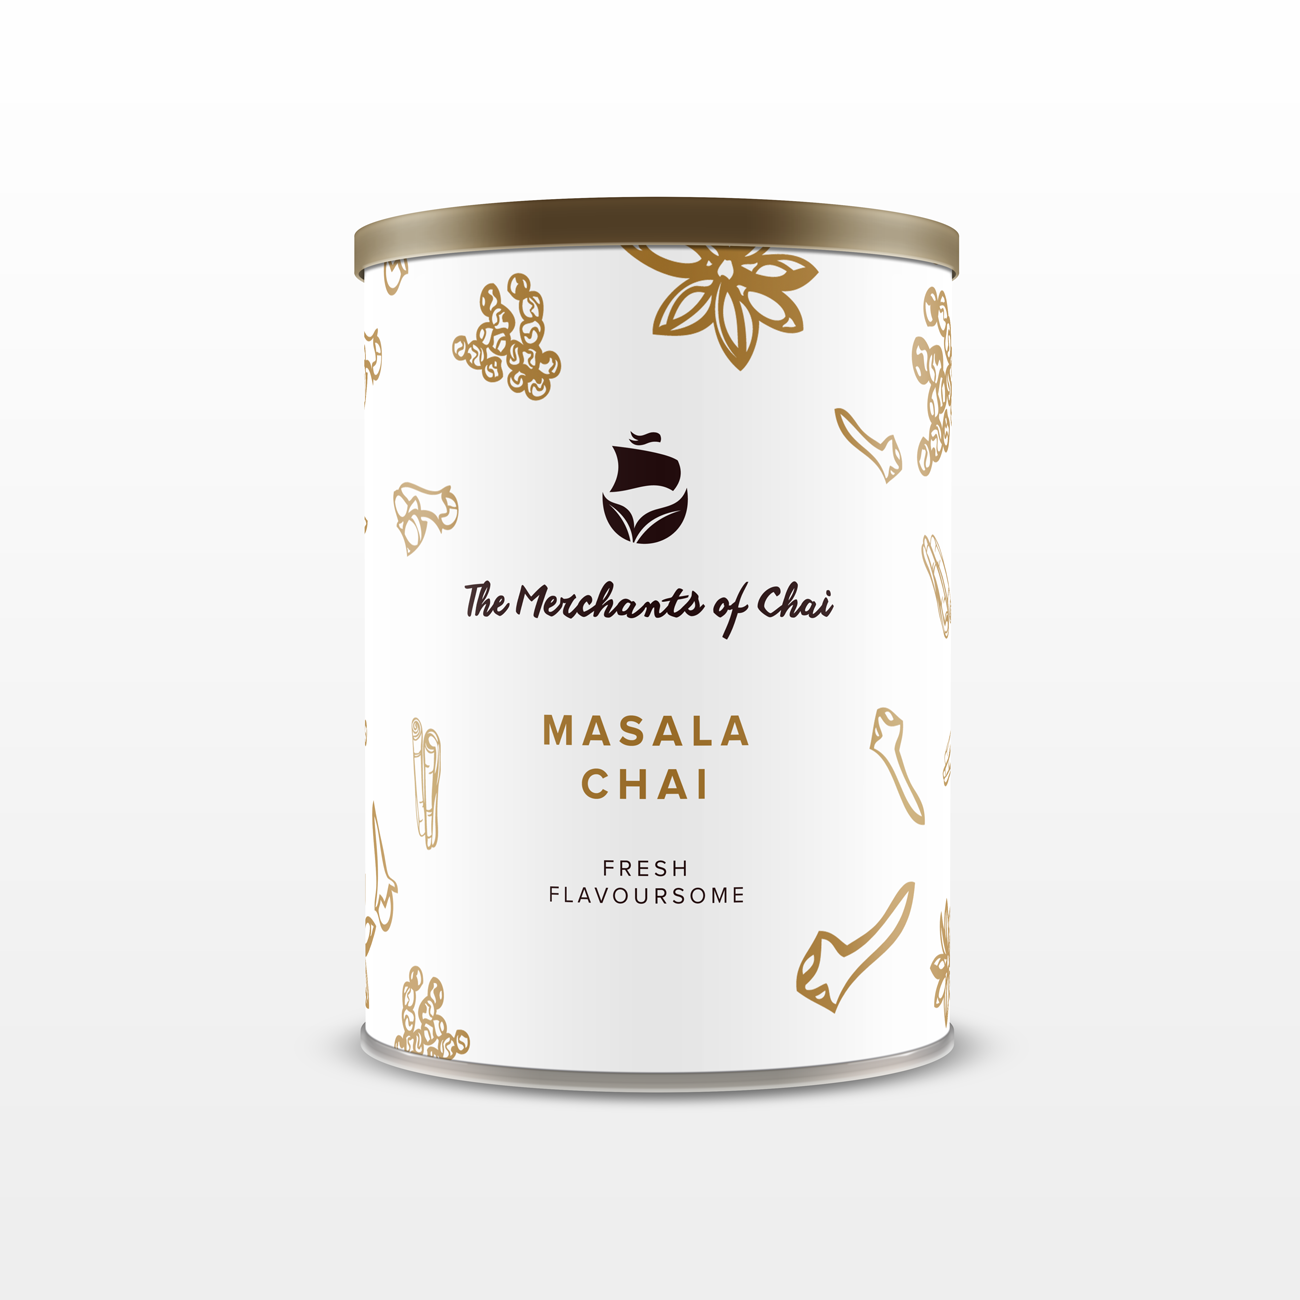 The Merchants of Chai